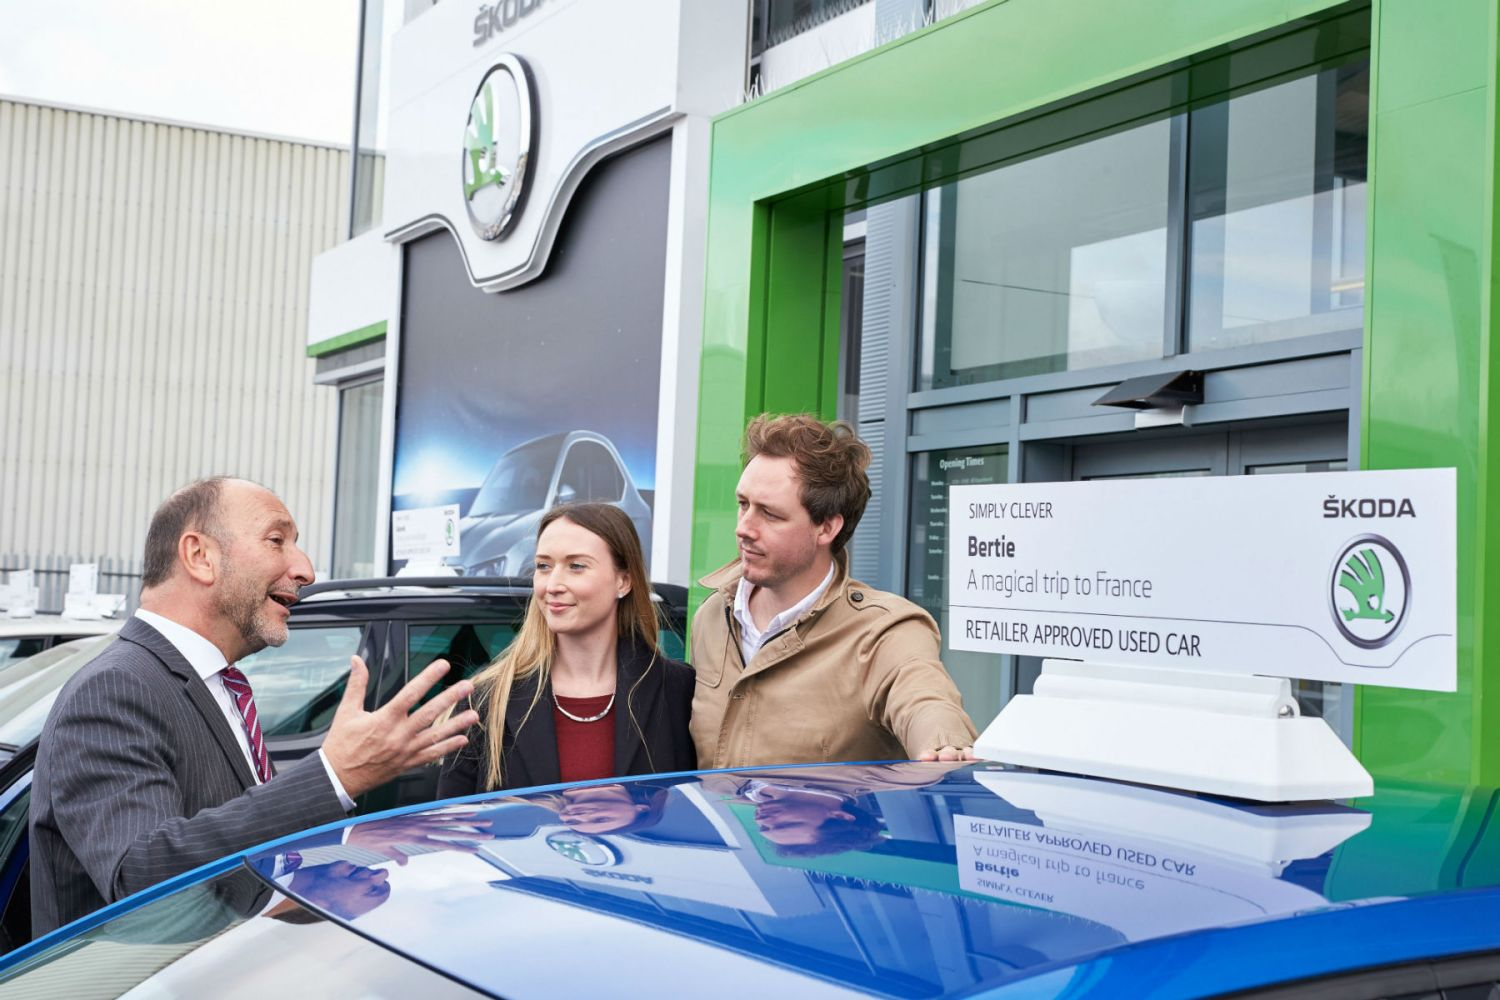 This Skoda dealer will tell you your car's name and personality traits